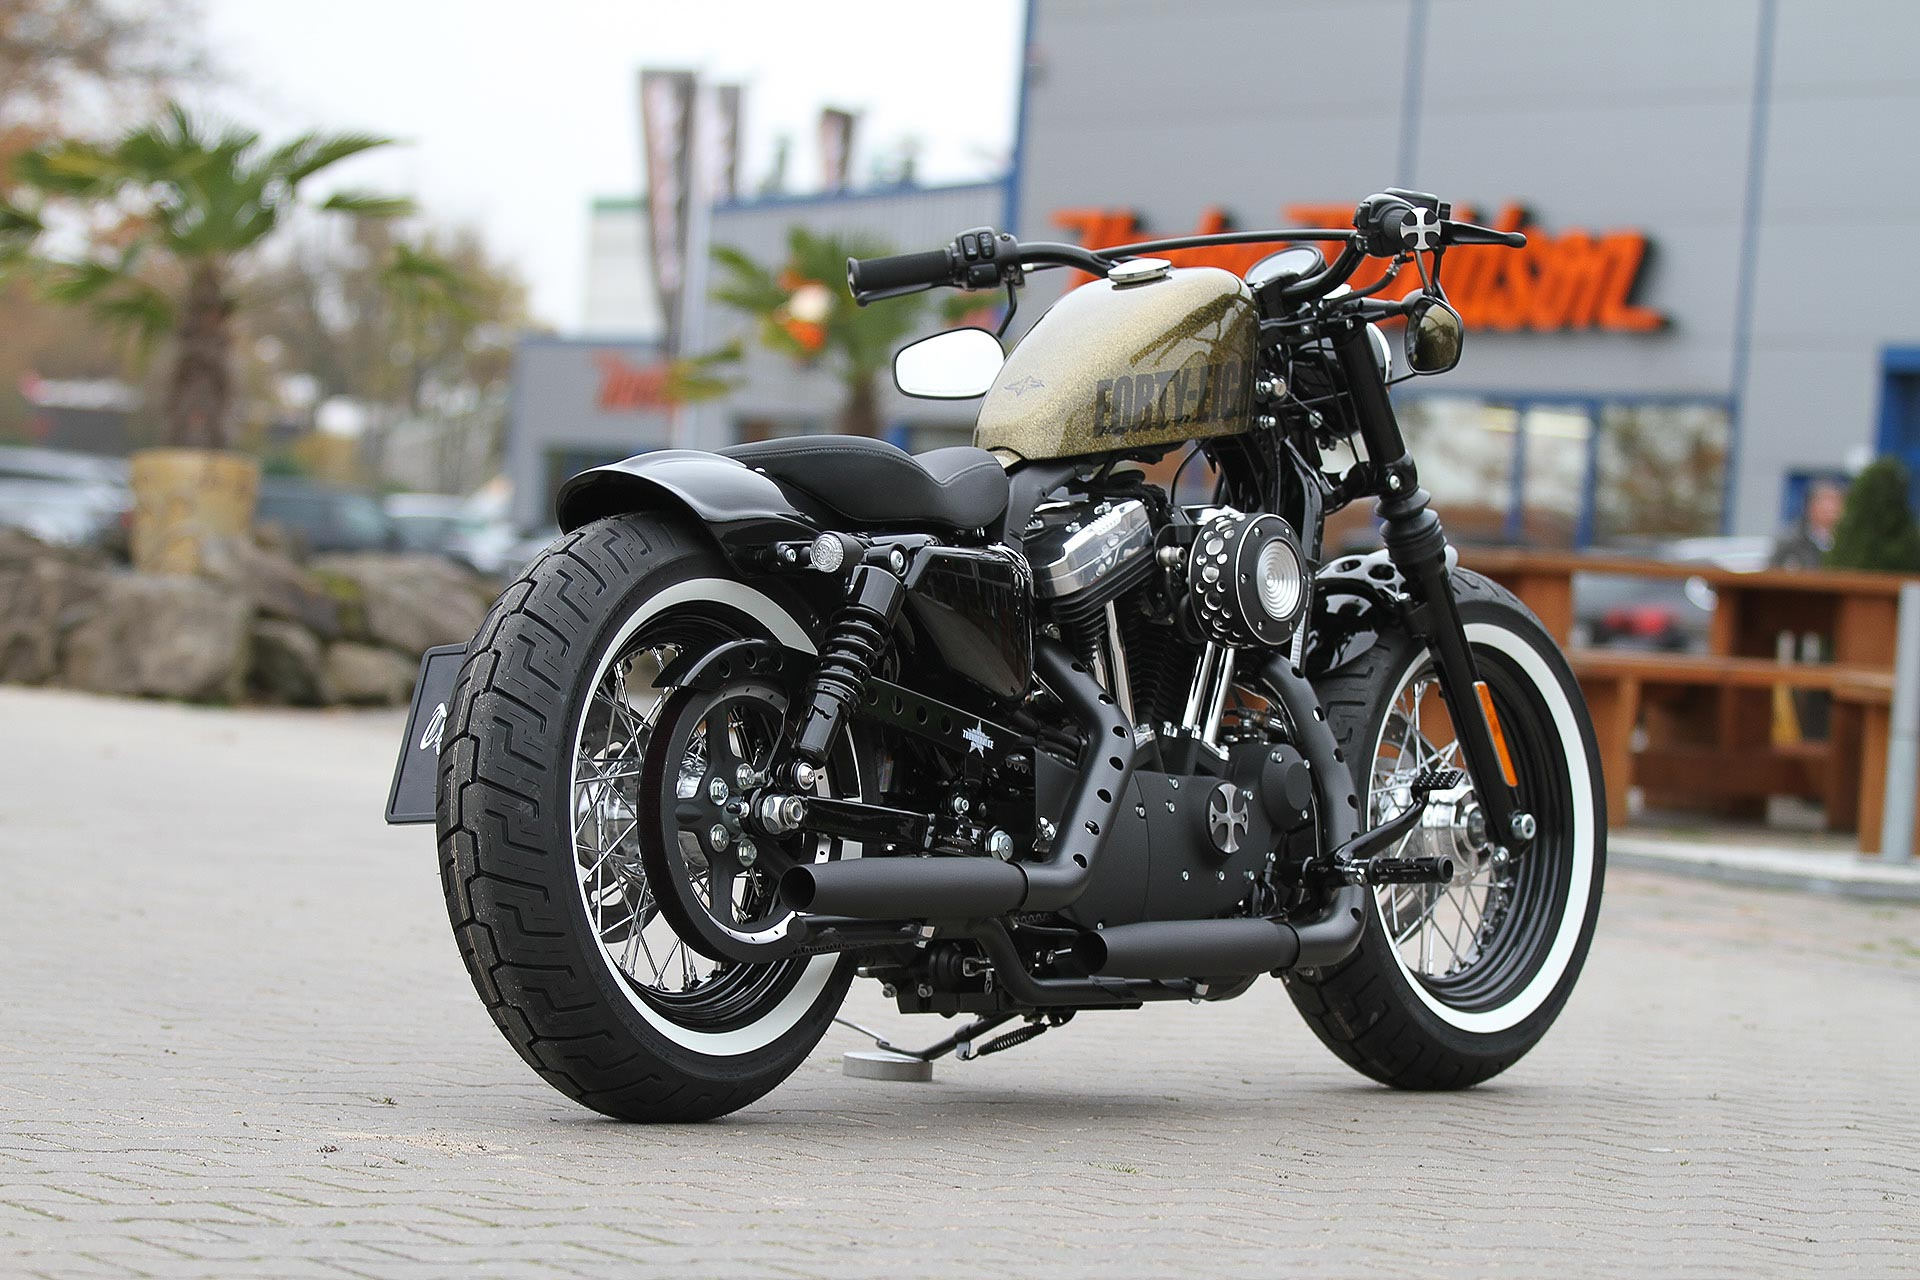 Thunderbike Bobber H D Forty Eight Sportster Xl1200x Custombike